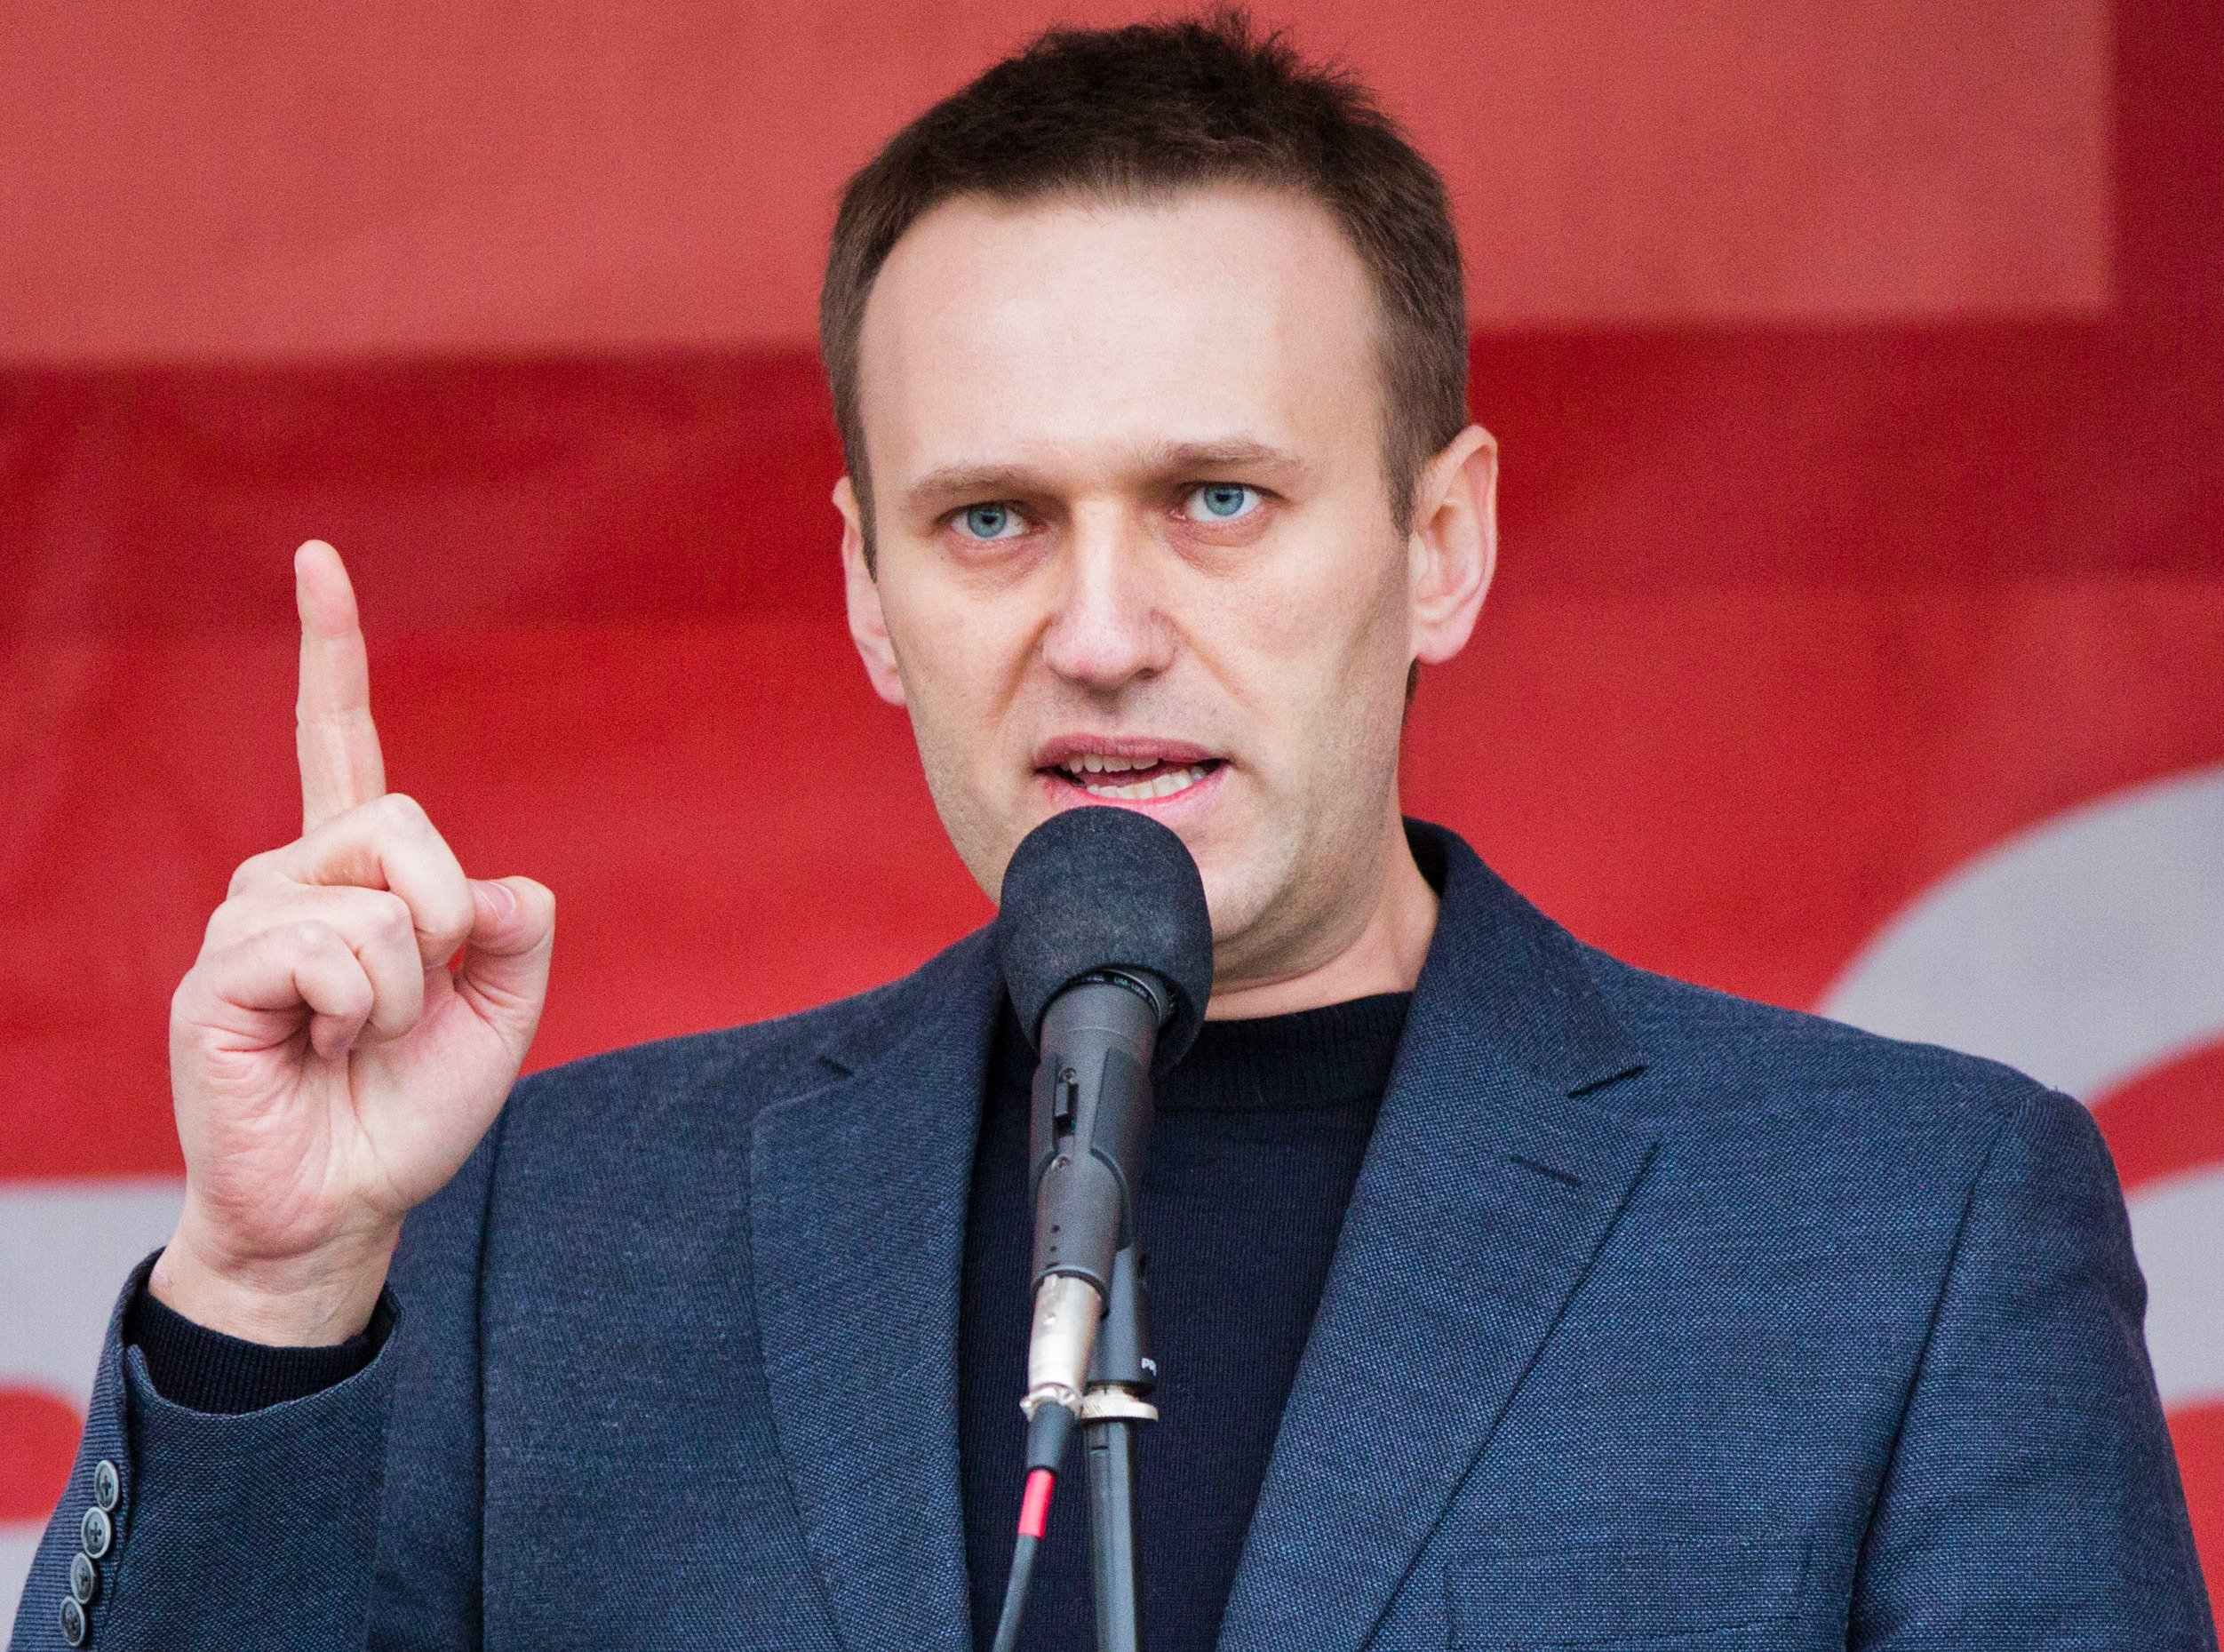 Anti-corruption protests in Russia led by right winger Alexei Navalny